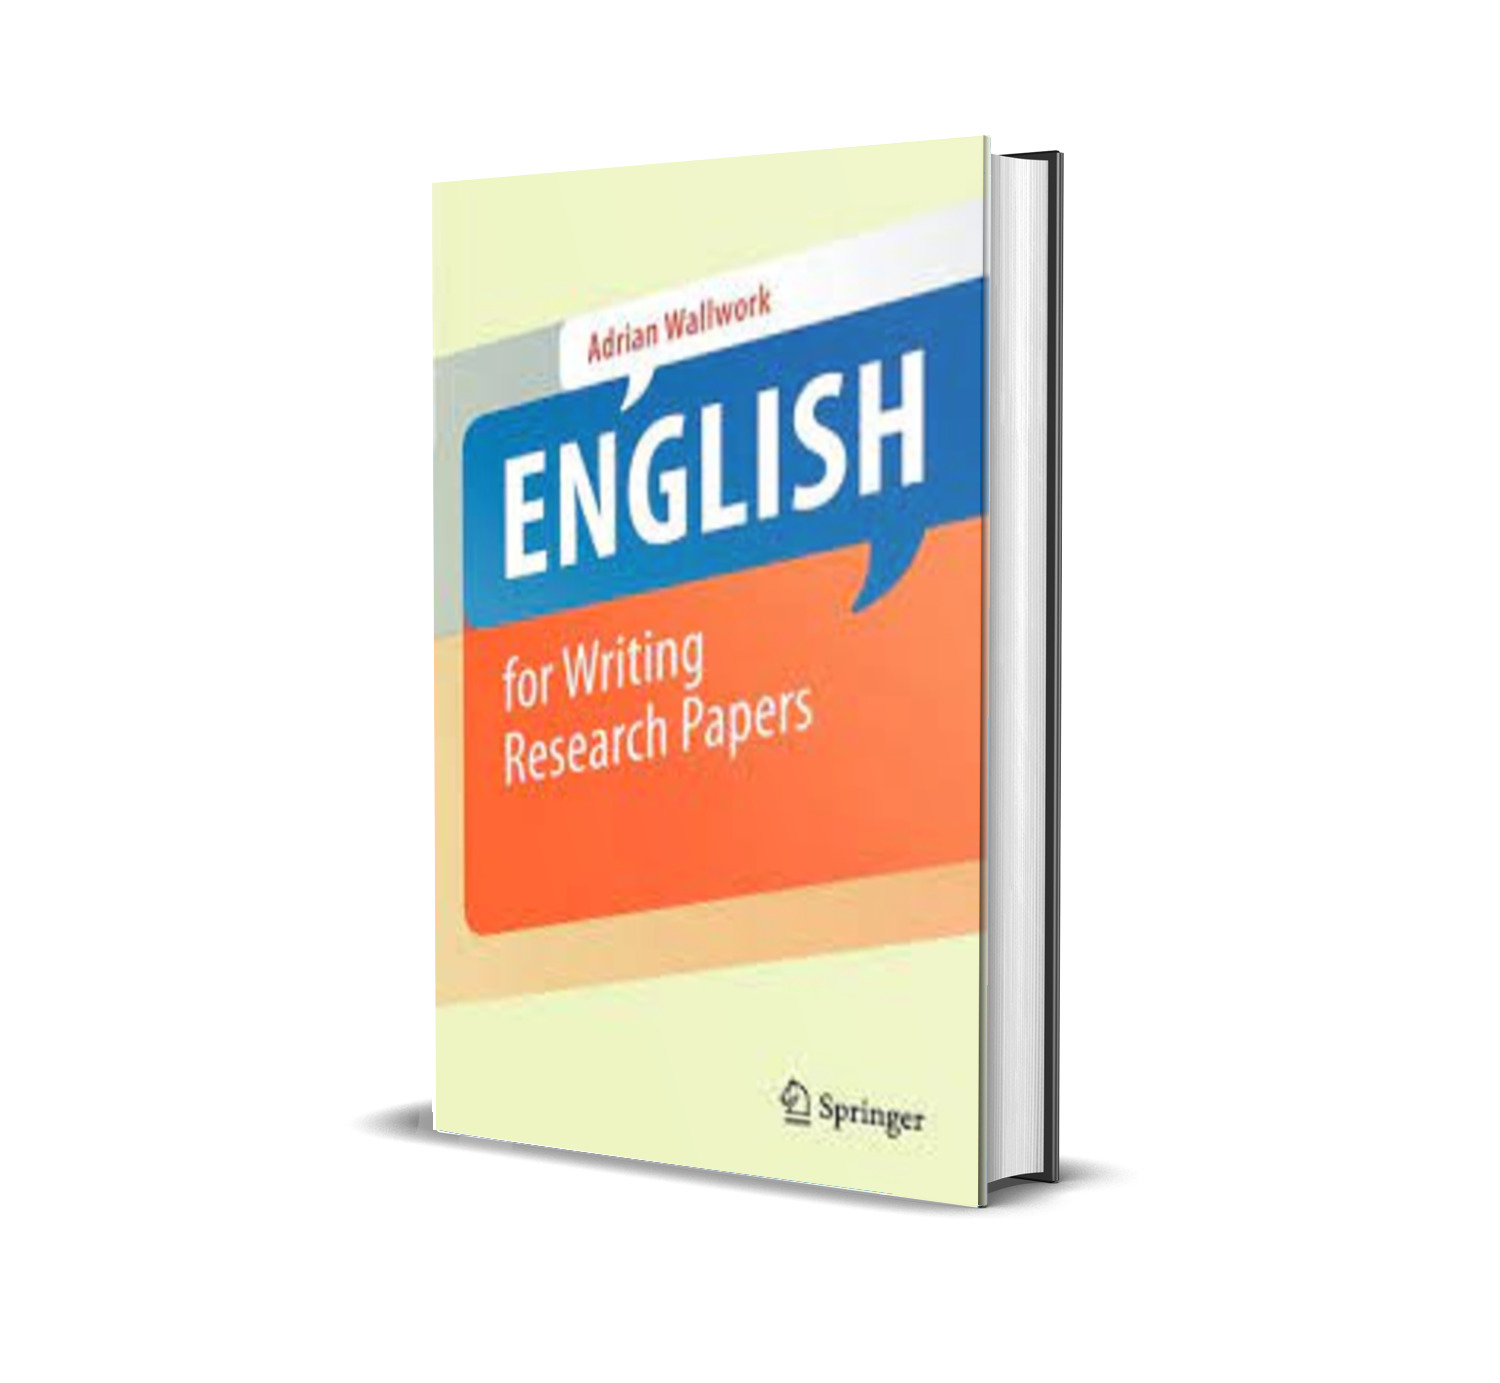 English for Writing Research Papers - Adrain Wallwork